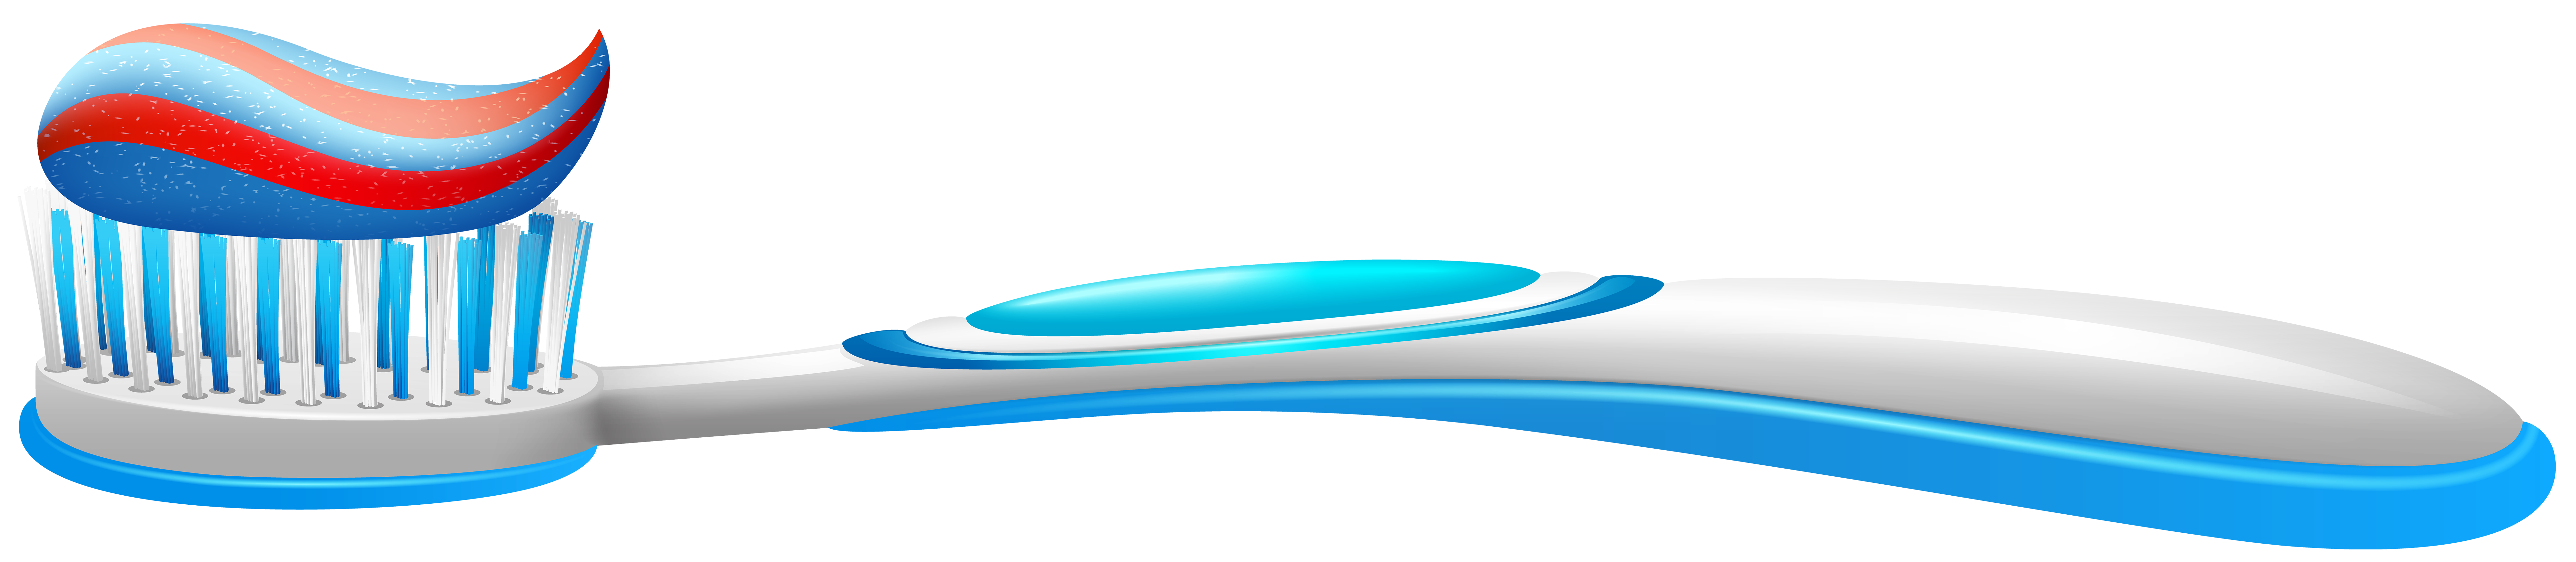 vector free library Toothpaste clipart. Toothbrush with png clip